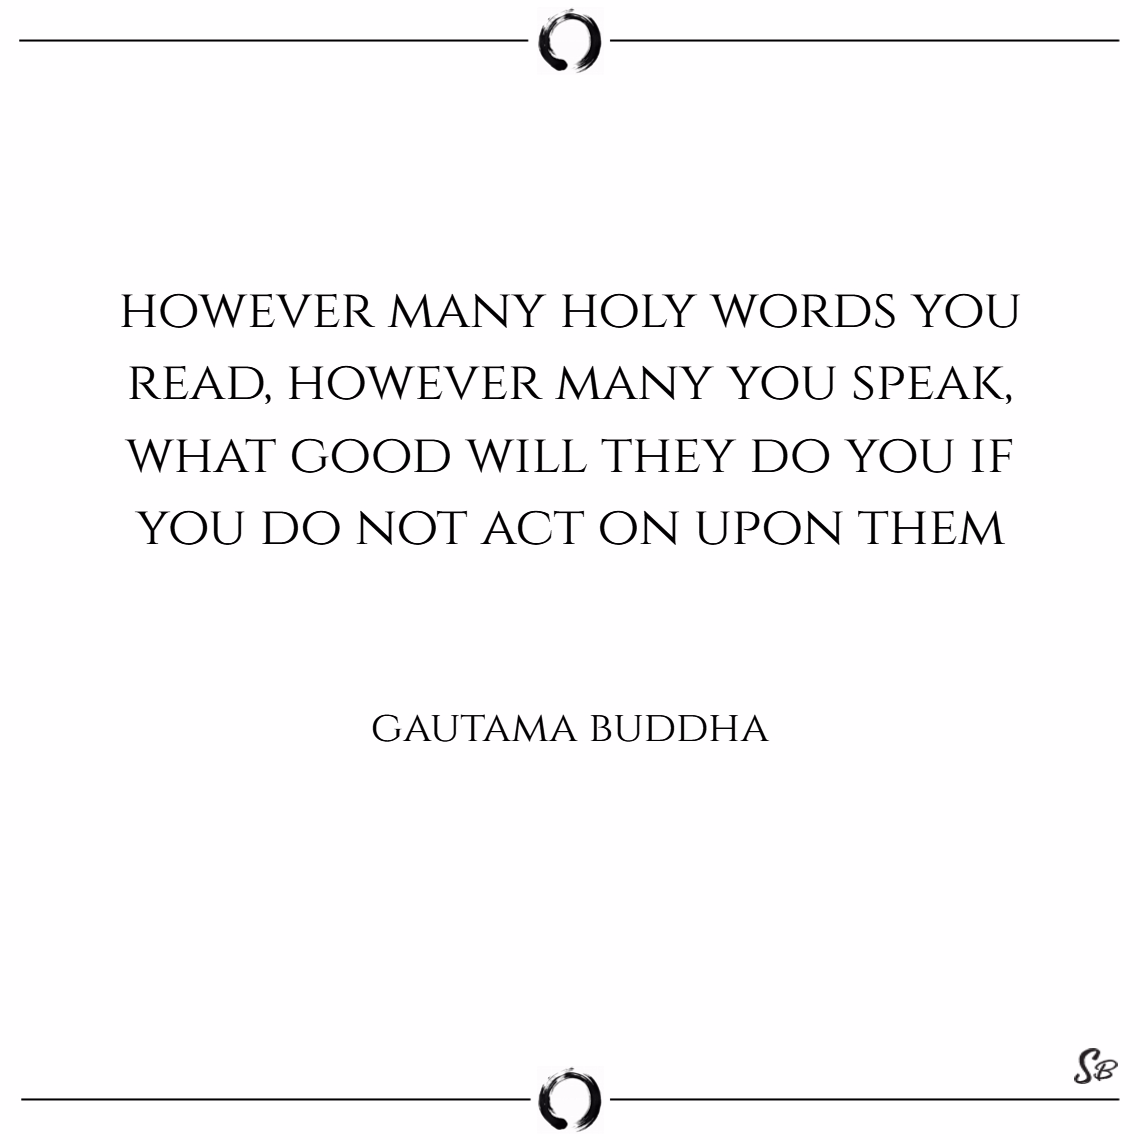 However many holy words you read, however many you speak, what good will they do you if you do not act on upon them – gautama buddha